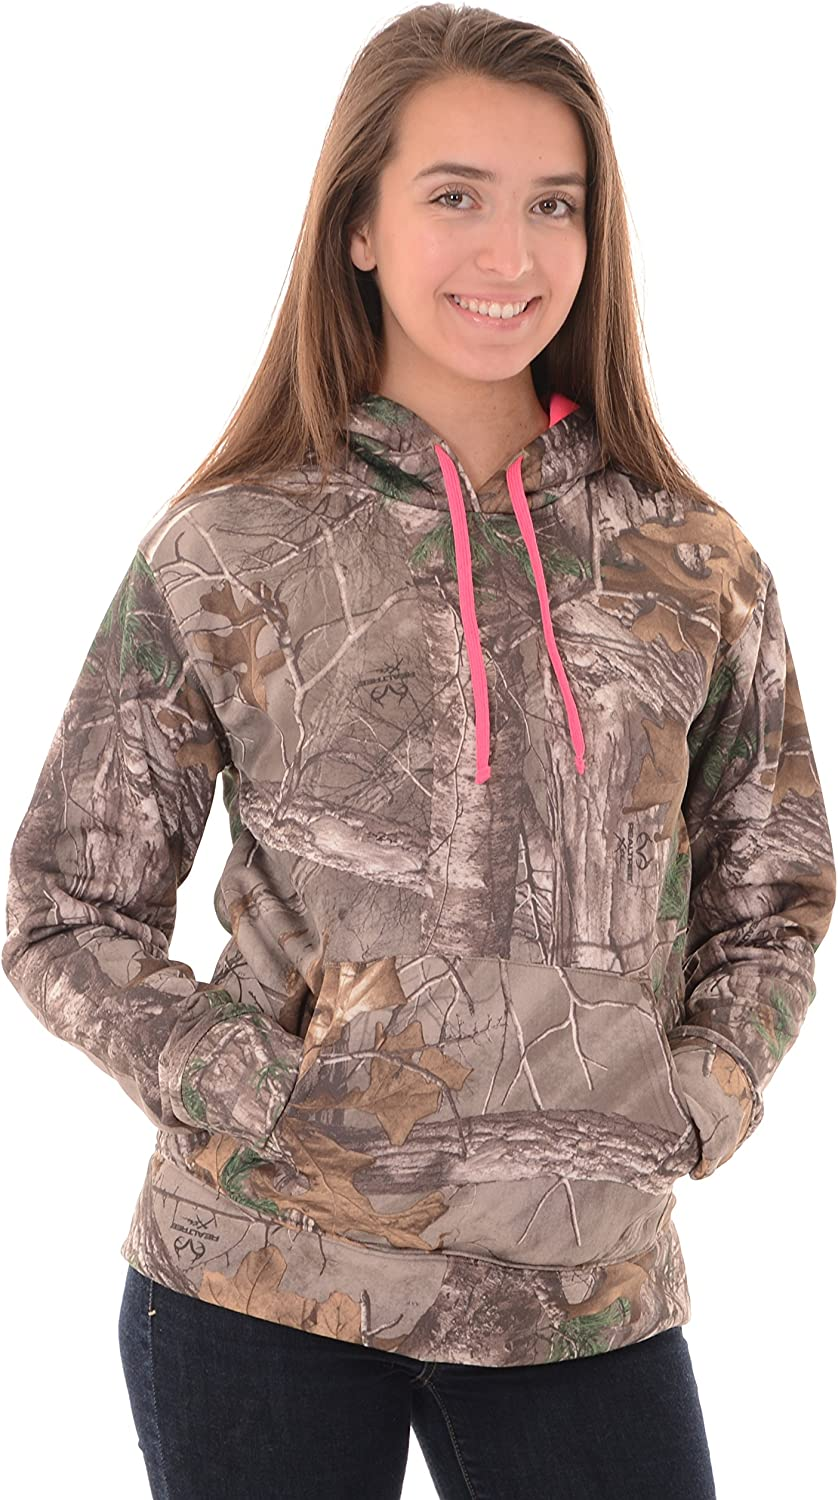 Realtree Womens Performance Camo Pullover Fleece